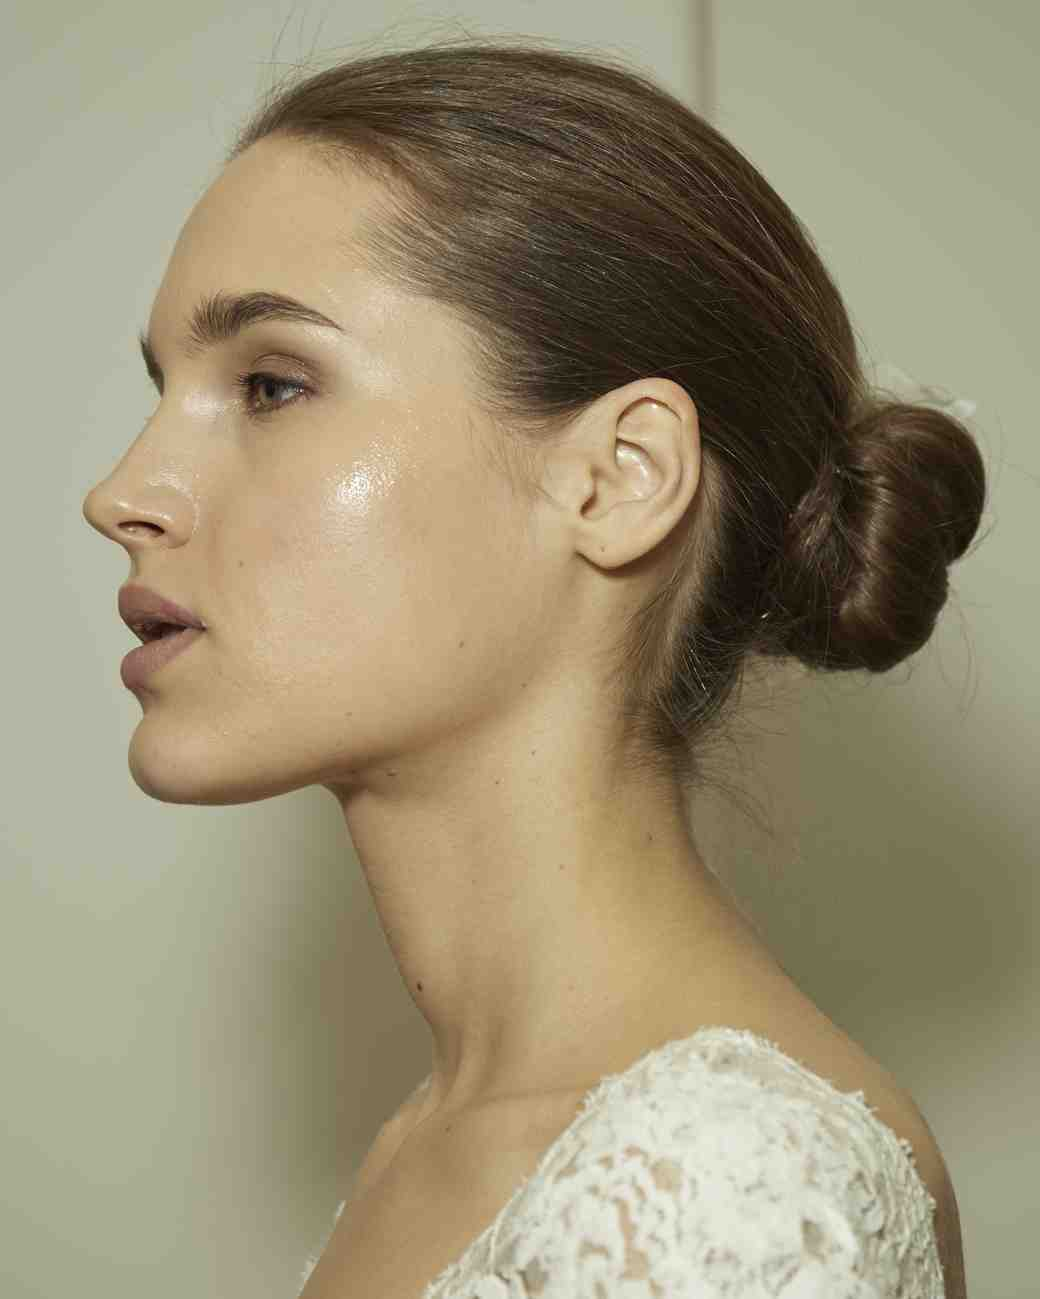 Monique Lhuillier Bridal Fashion Week Spring 2018 Beauty Look